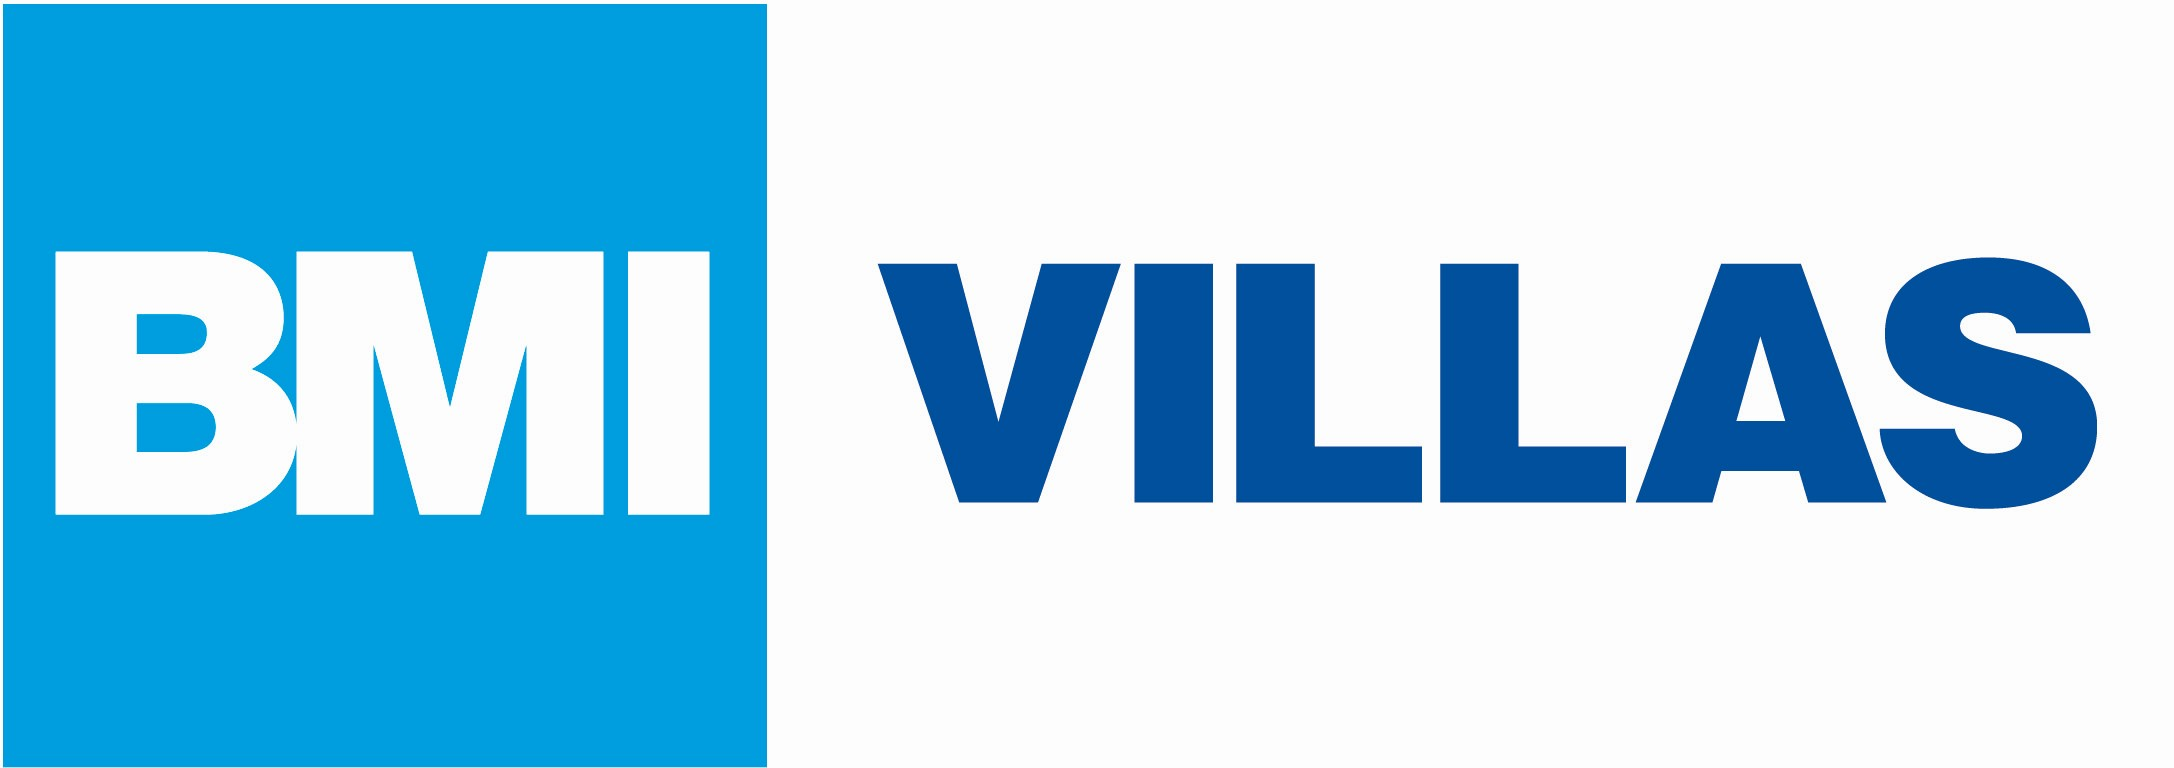 BMI_Villas_Logo_web